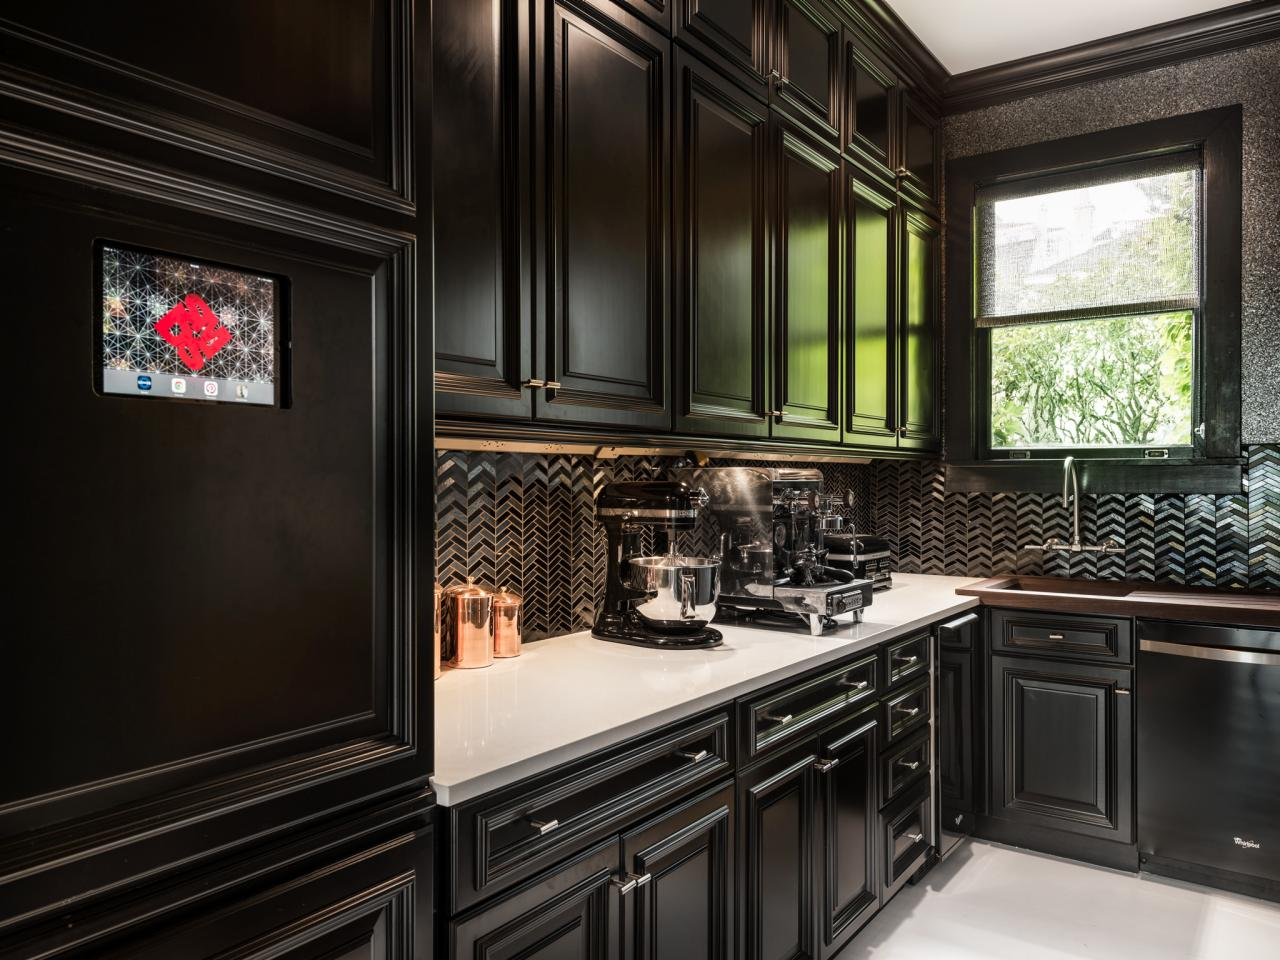 black-rta-kitchen-cabinets-beautiful-sleek